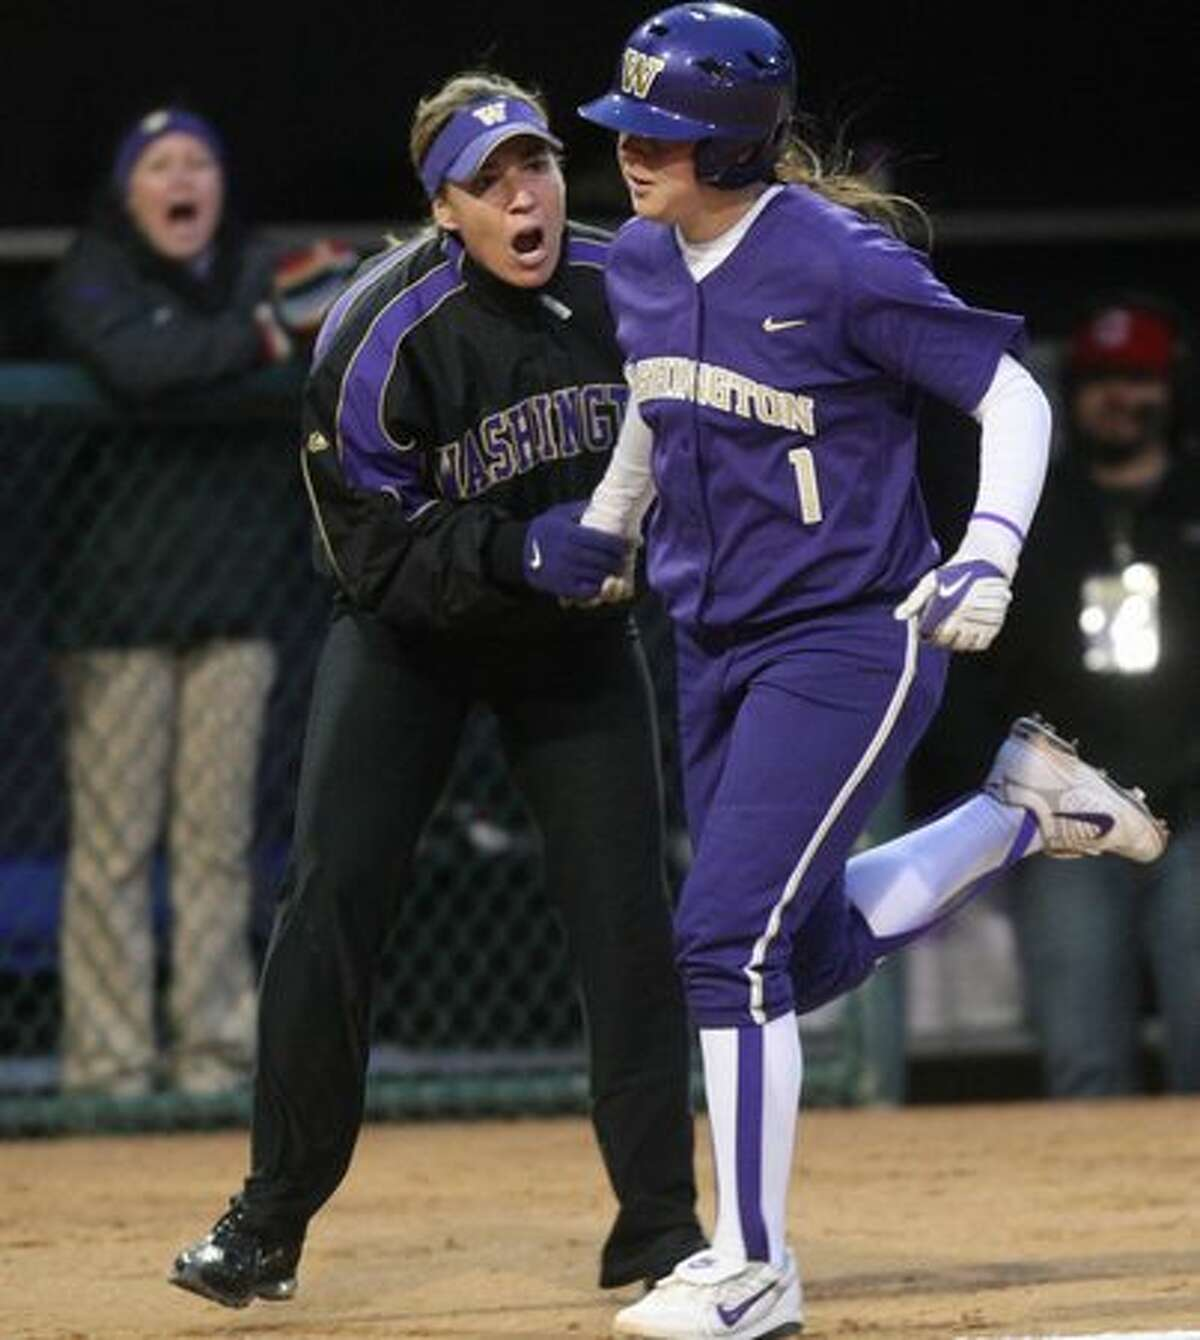 University of Washington player Shawna Wright rounds third base and celebrates with head coach Heather Tarr after Wright hit a home run against the University of Oklahoma during the third in a series of games in the NCAA Super Regionals on Friday May 28, 2010 at Husky Stadium.